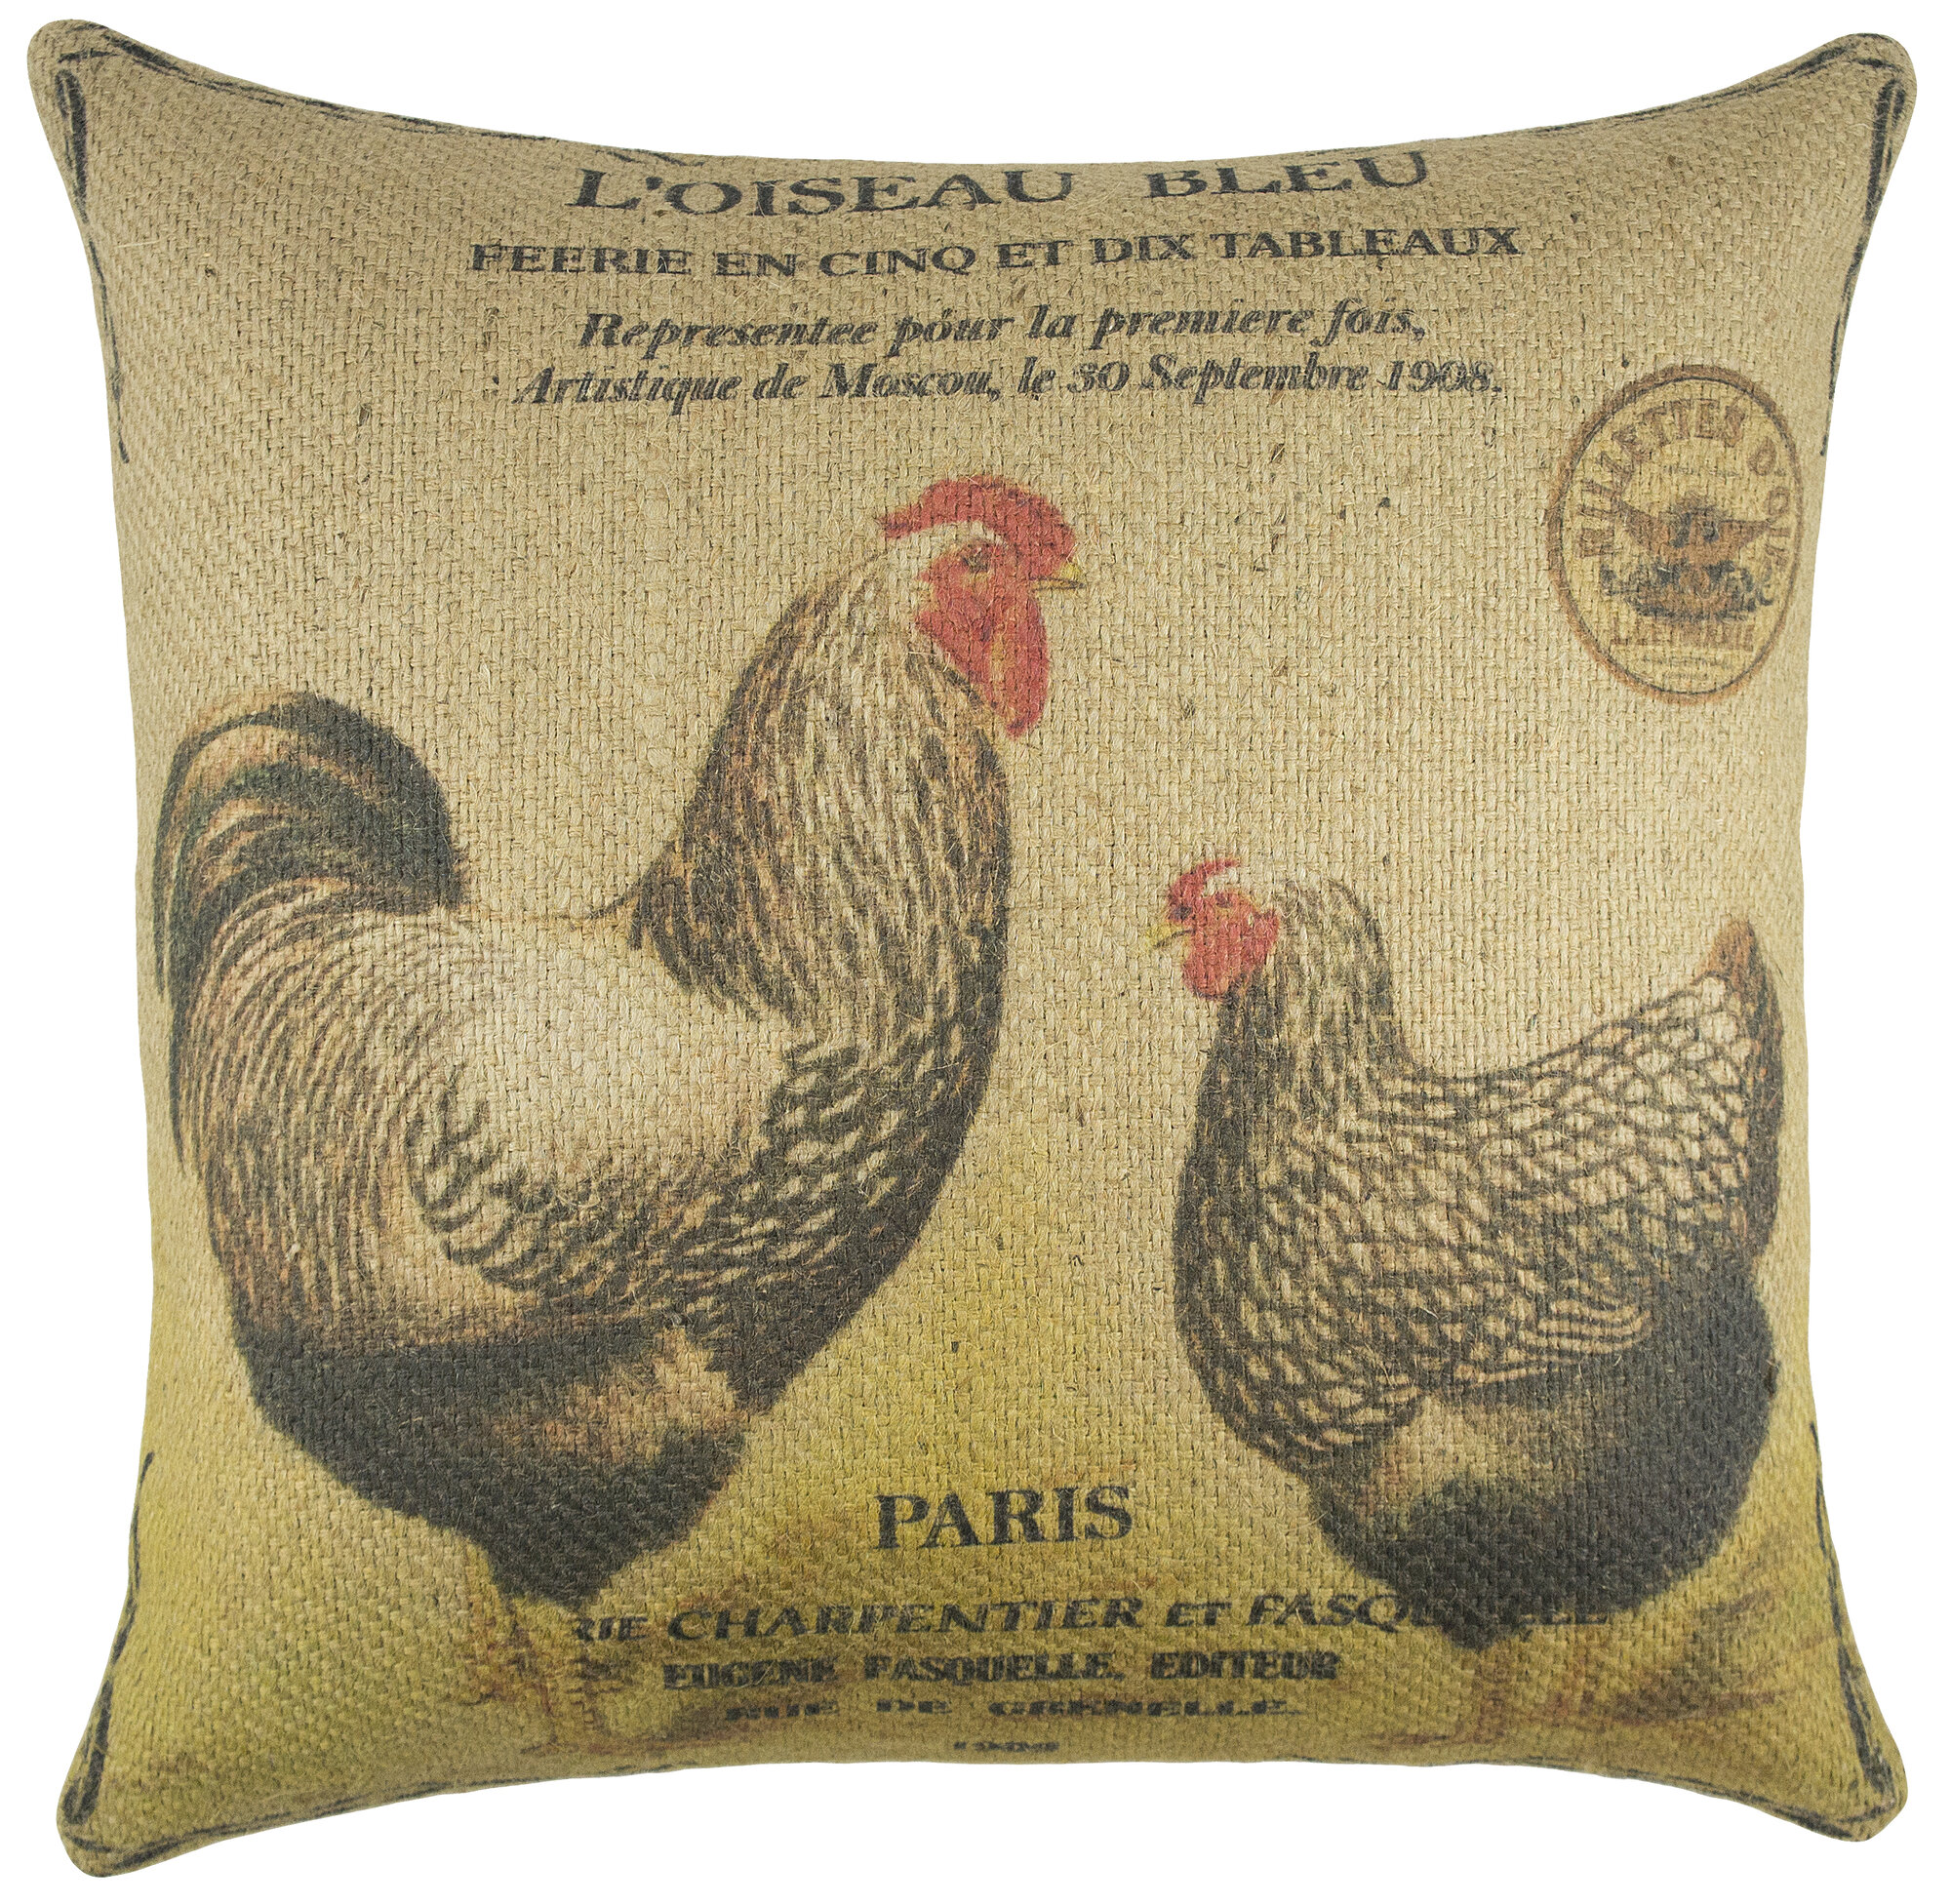 How To Make A Burlap Throw Pillow : TheWatsonShop Chickens Burlap Throw Pillow eBay